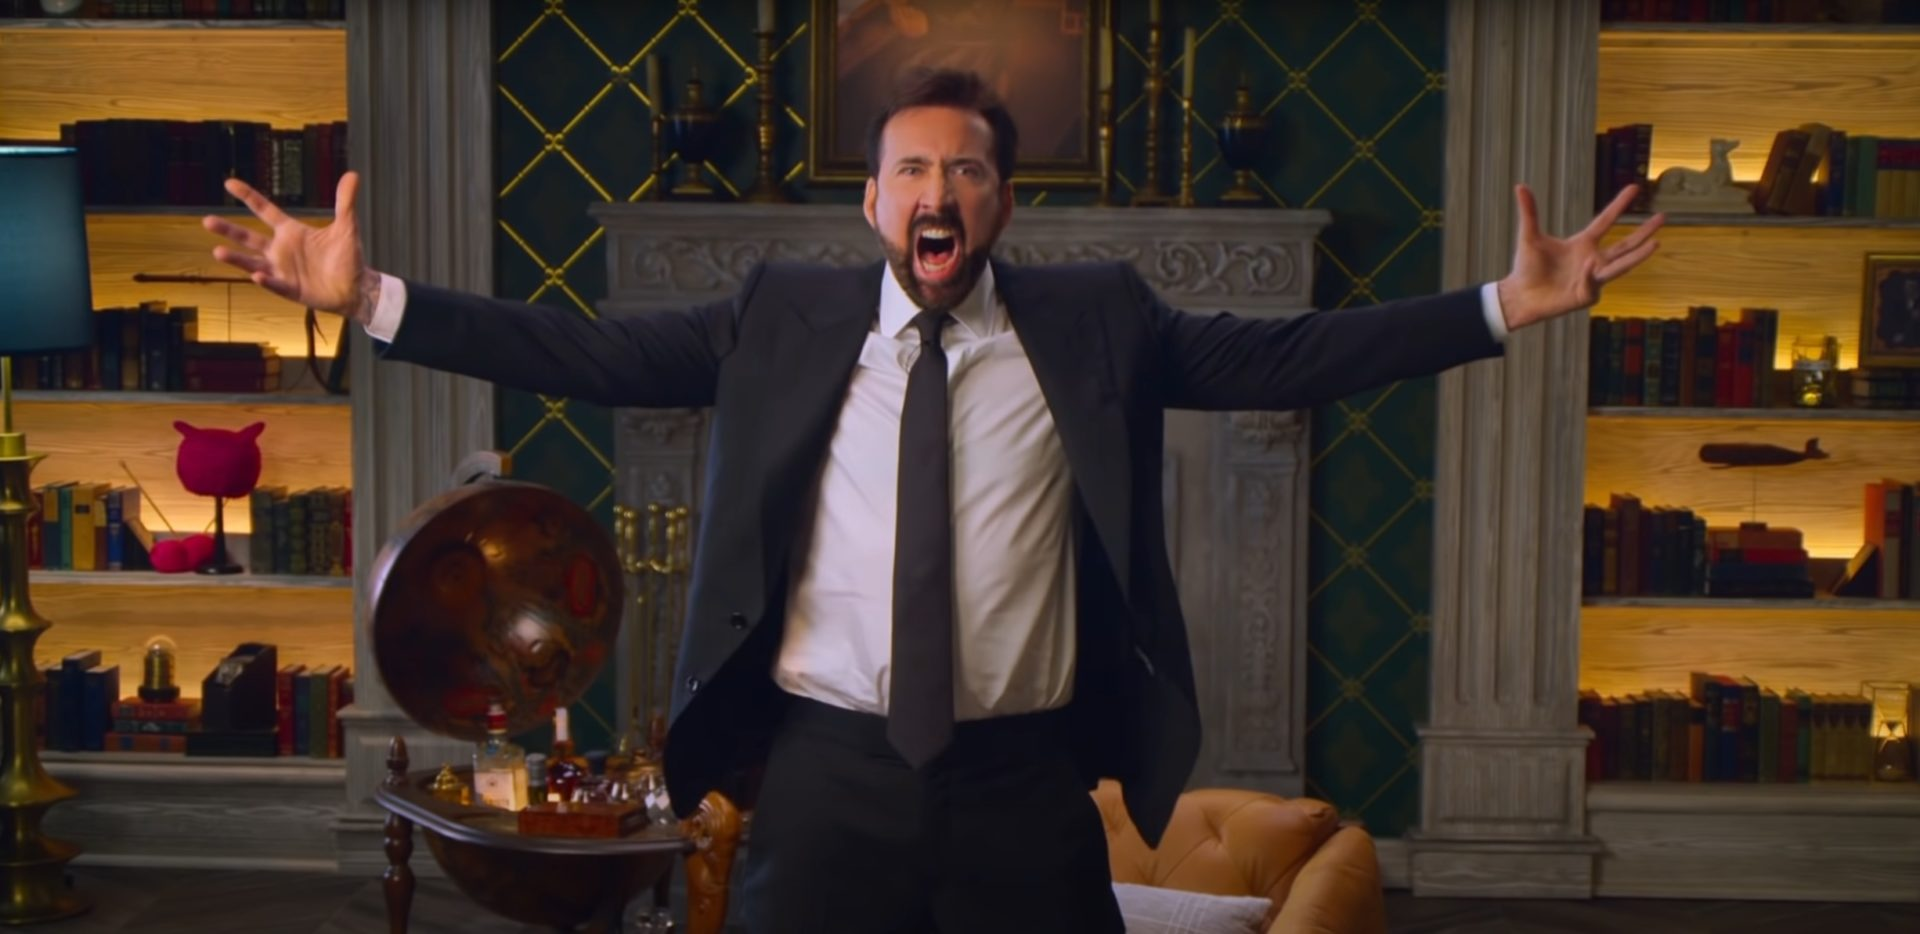 Nicholas Cage in Netflix's History of Swear Words